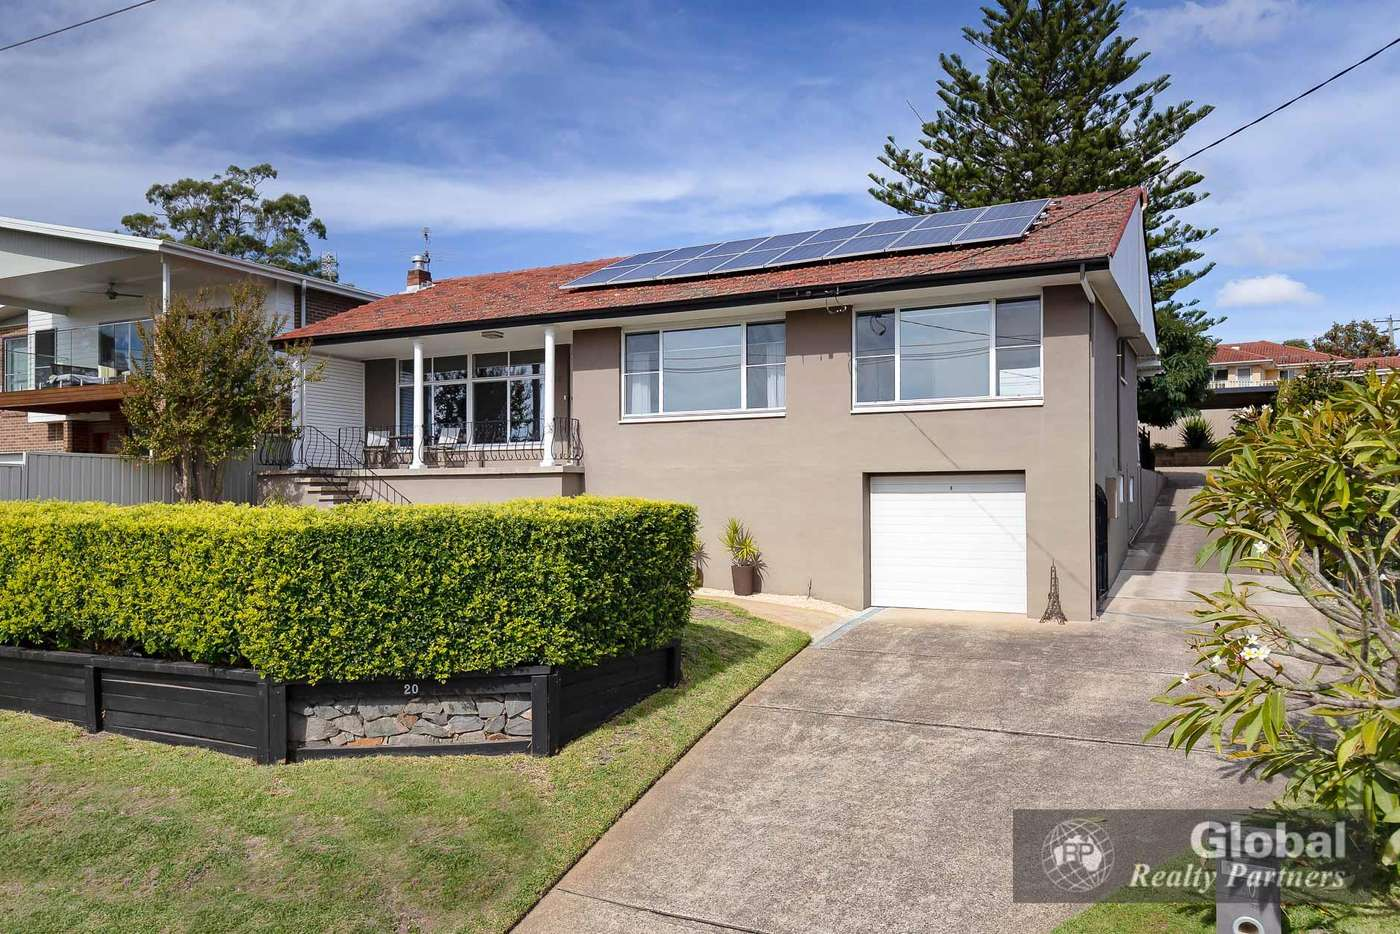 5 Frederick Street, Valentine, NSW 2280 For Sale - Homely